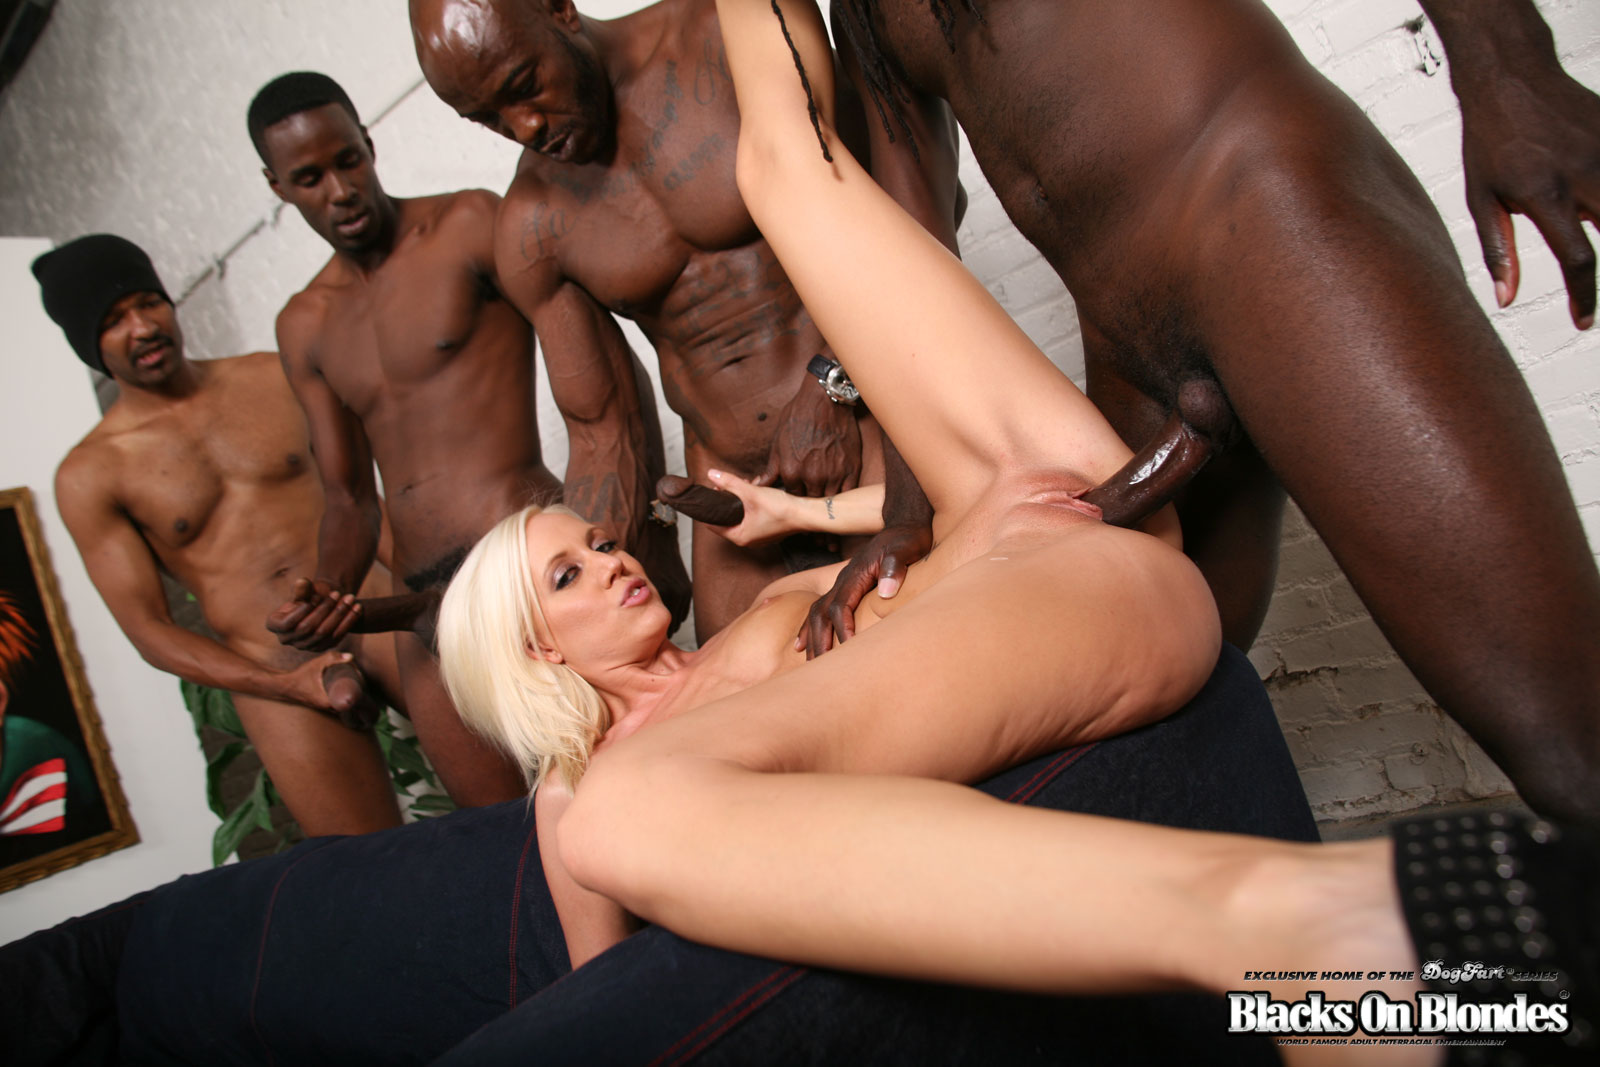 Interracial Gangbang :: Gang Bang Orgy